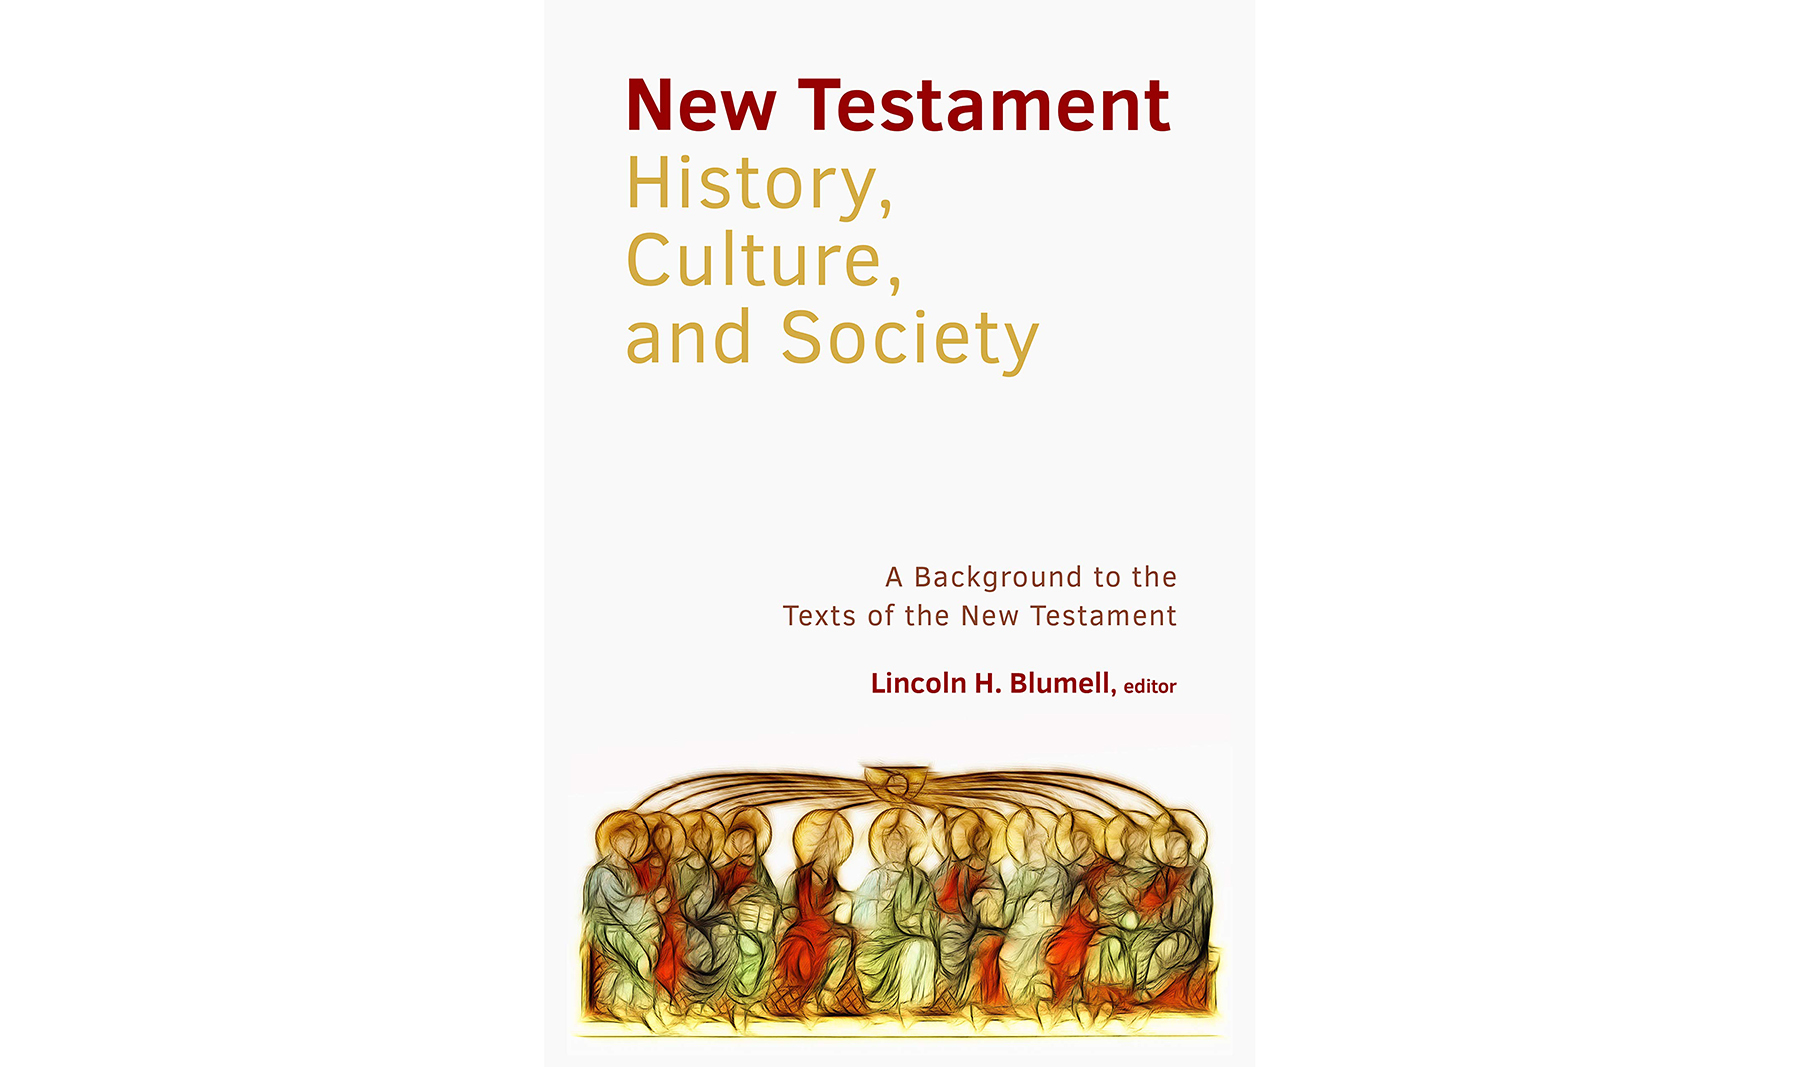 """New Testament History, Culture, and Society: A Background to Texts of the New Testament"" is edited by Lincoln H. Blumell."